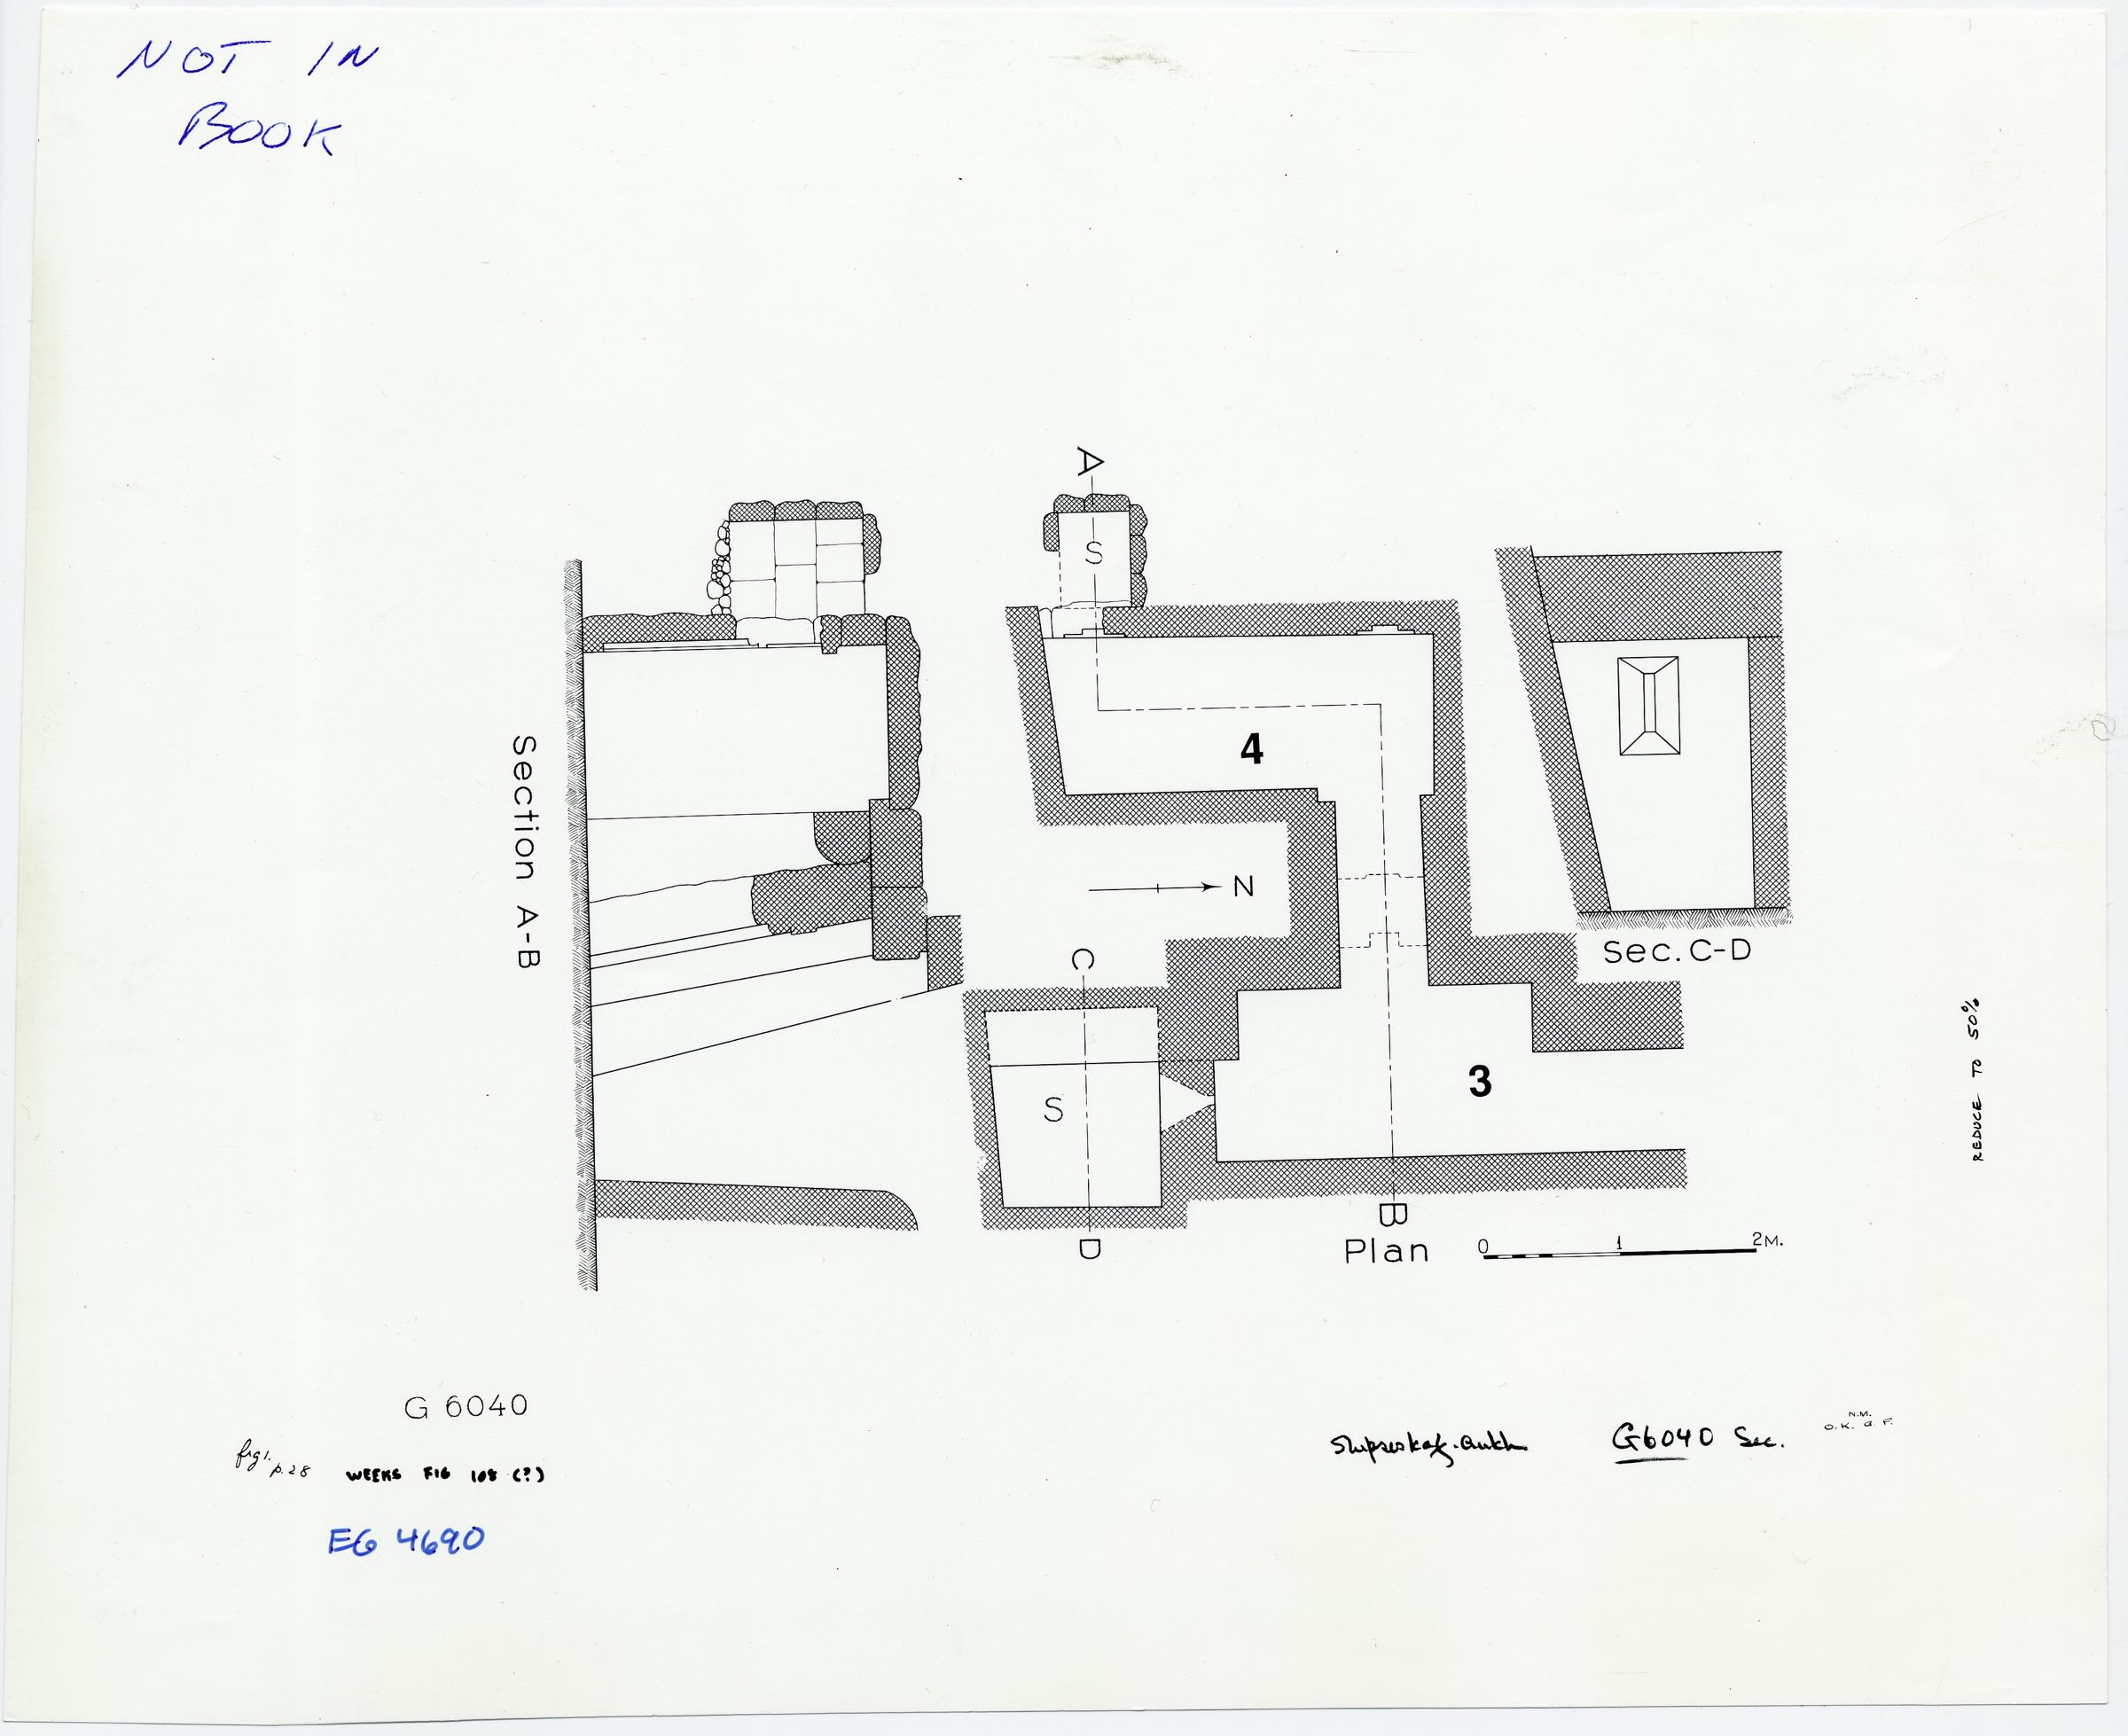 Maps and plans: G 6040, Plan and sections